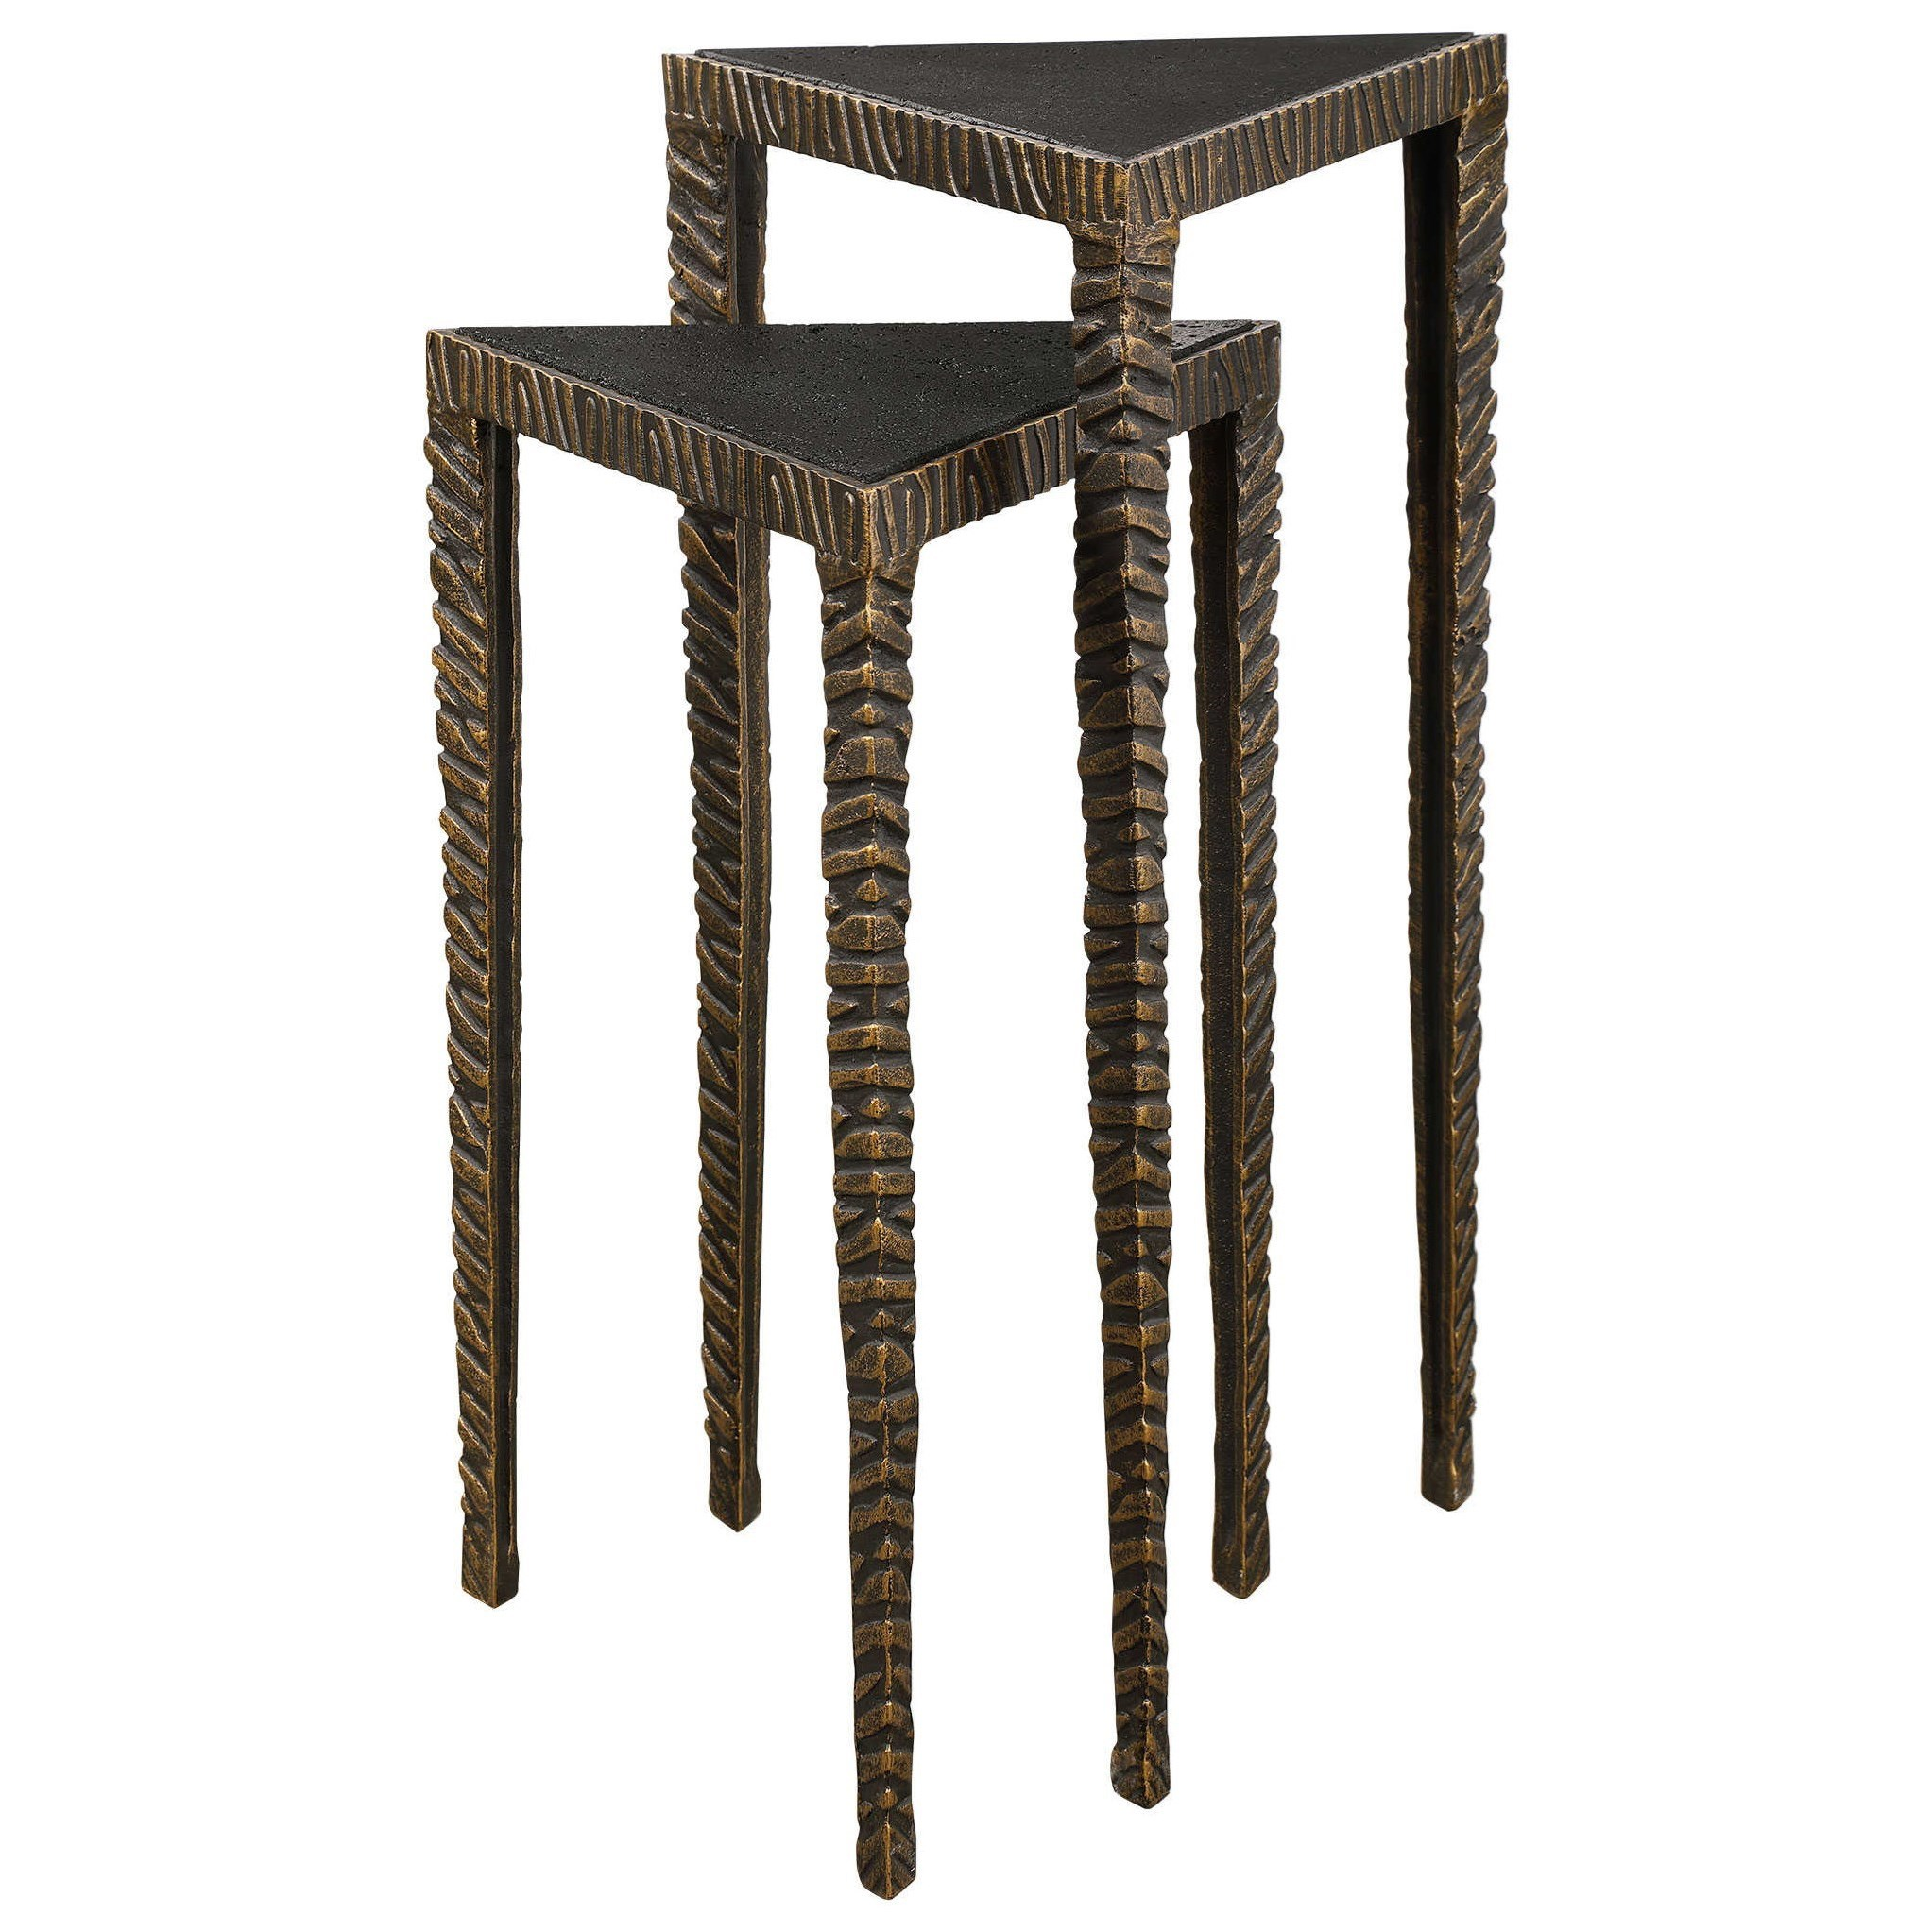 Accent Furniture - Occasional Tables Triangular Accent Tables, S/2 by Uttermost at Upper Room Home Furnishings